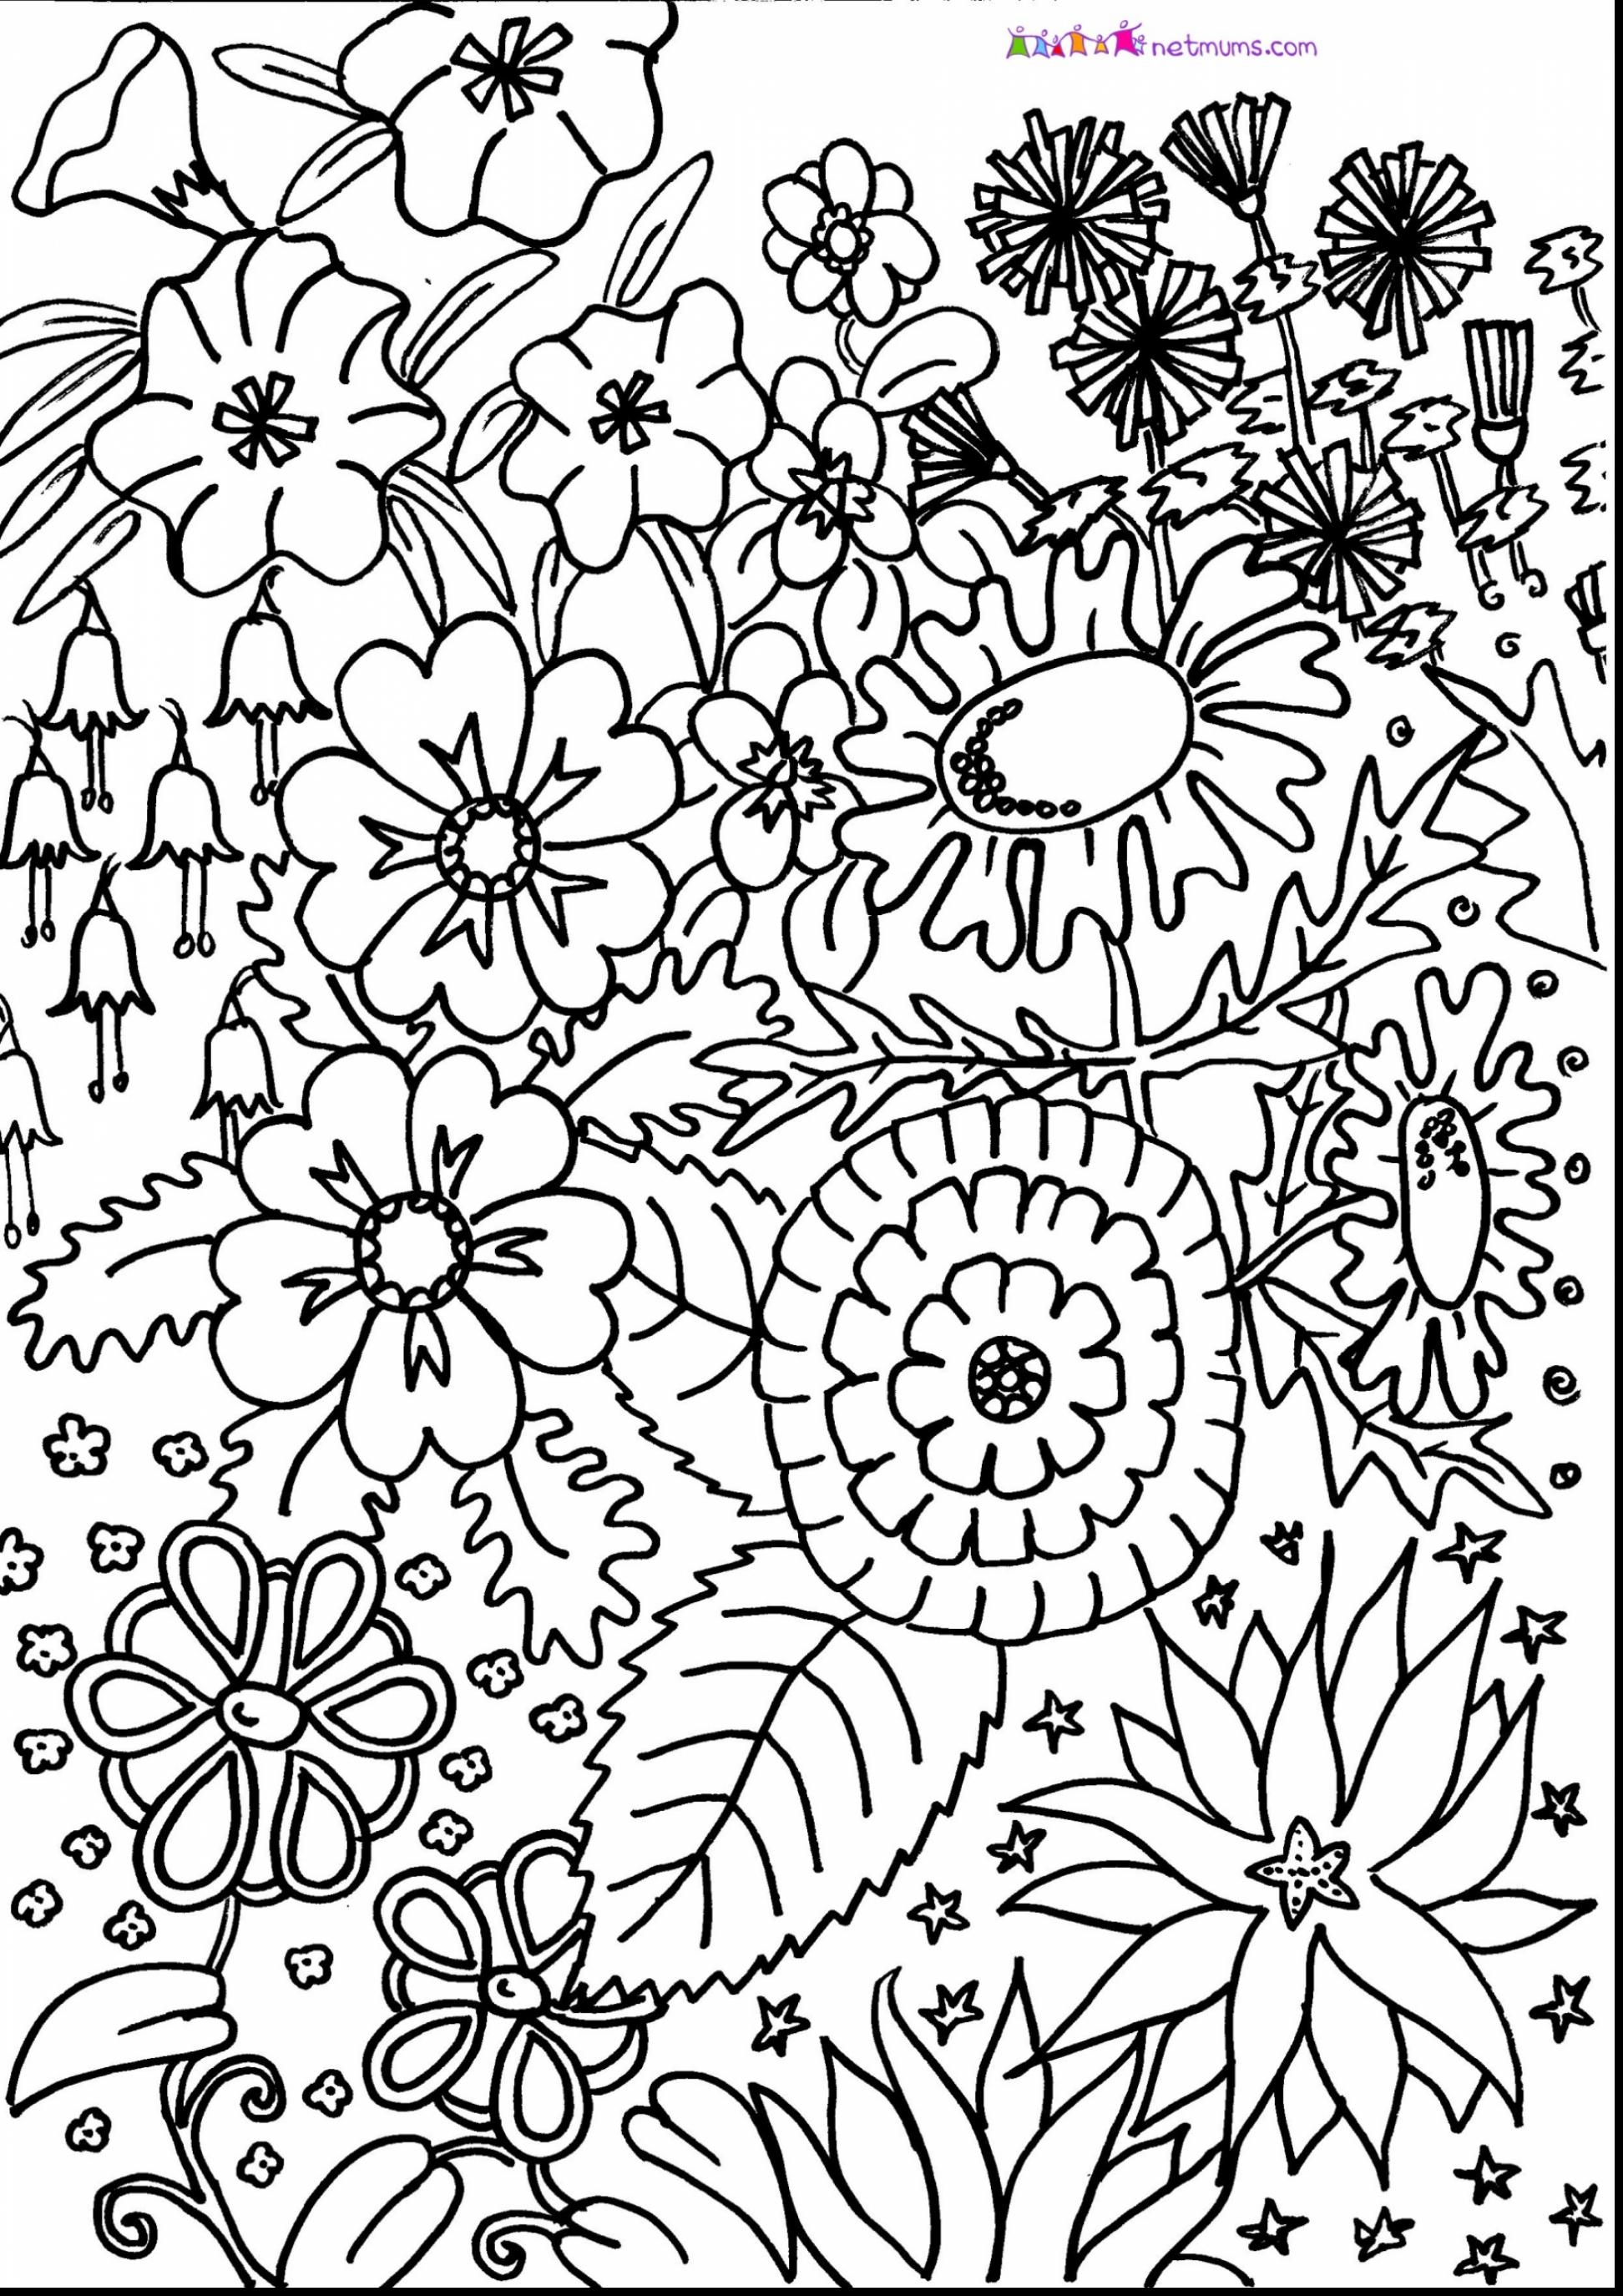 Adult Coloring Pages Patterns Flowers At Getdrawings